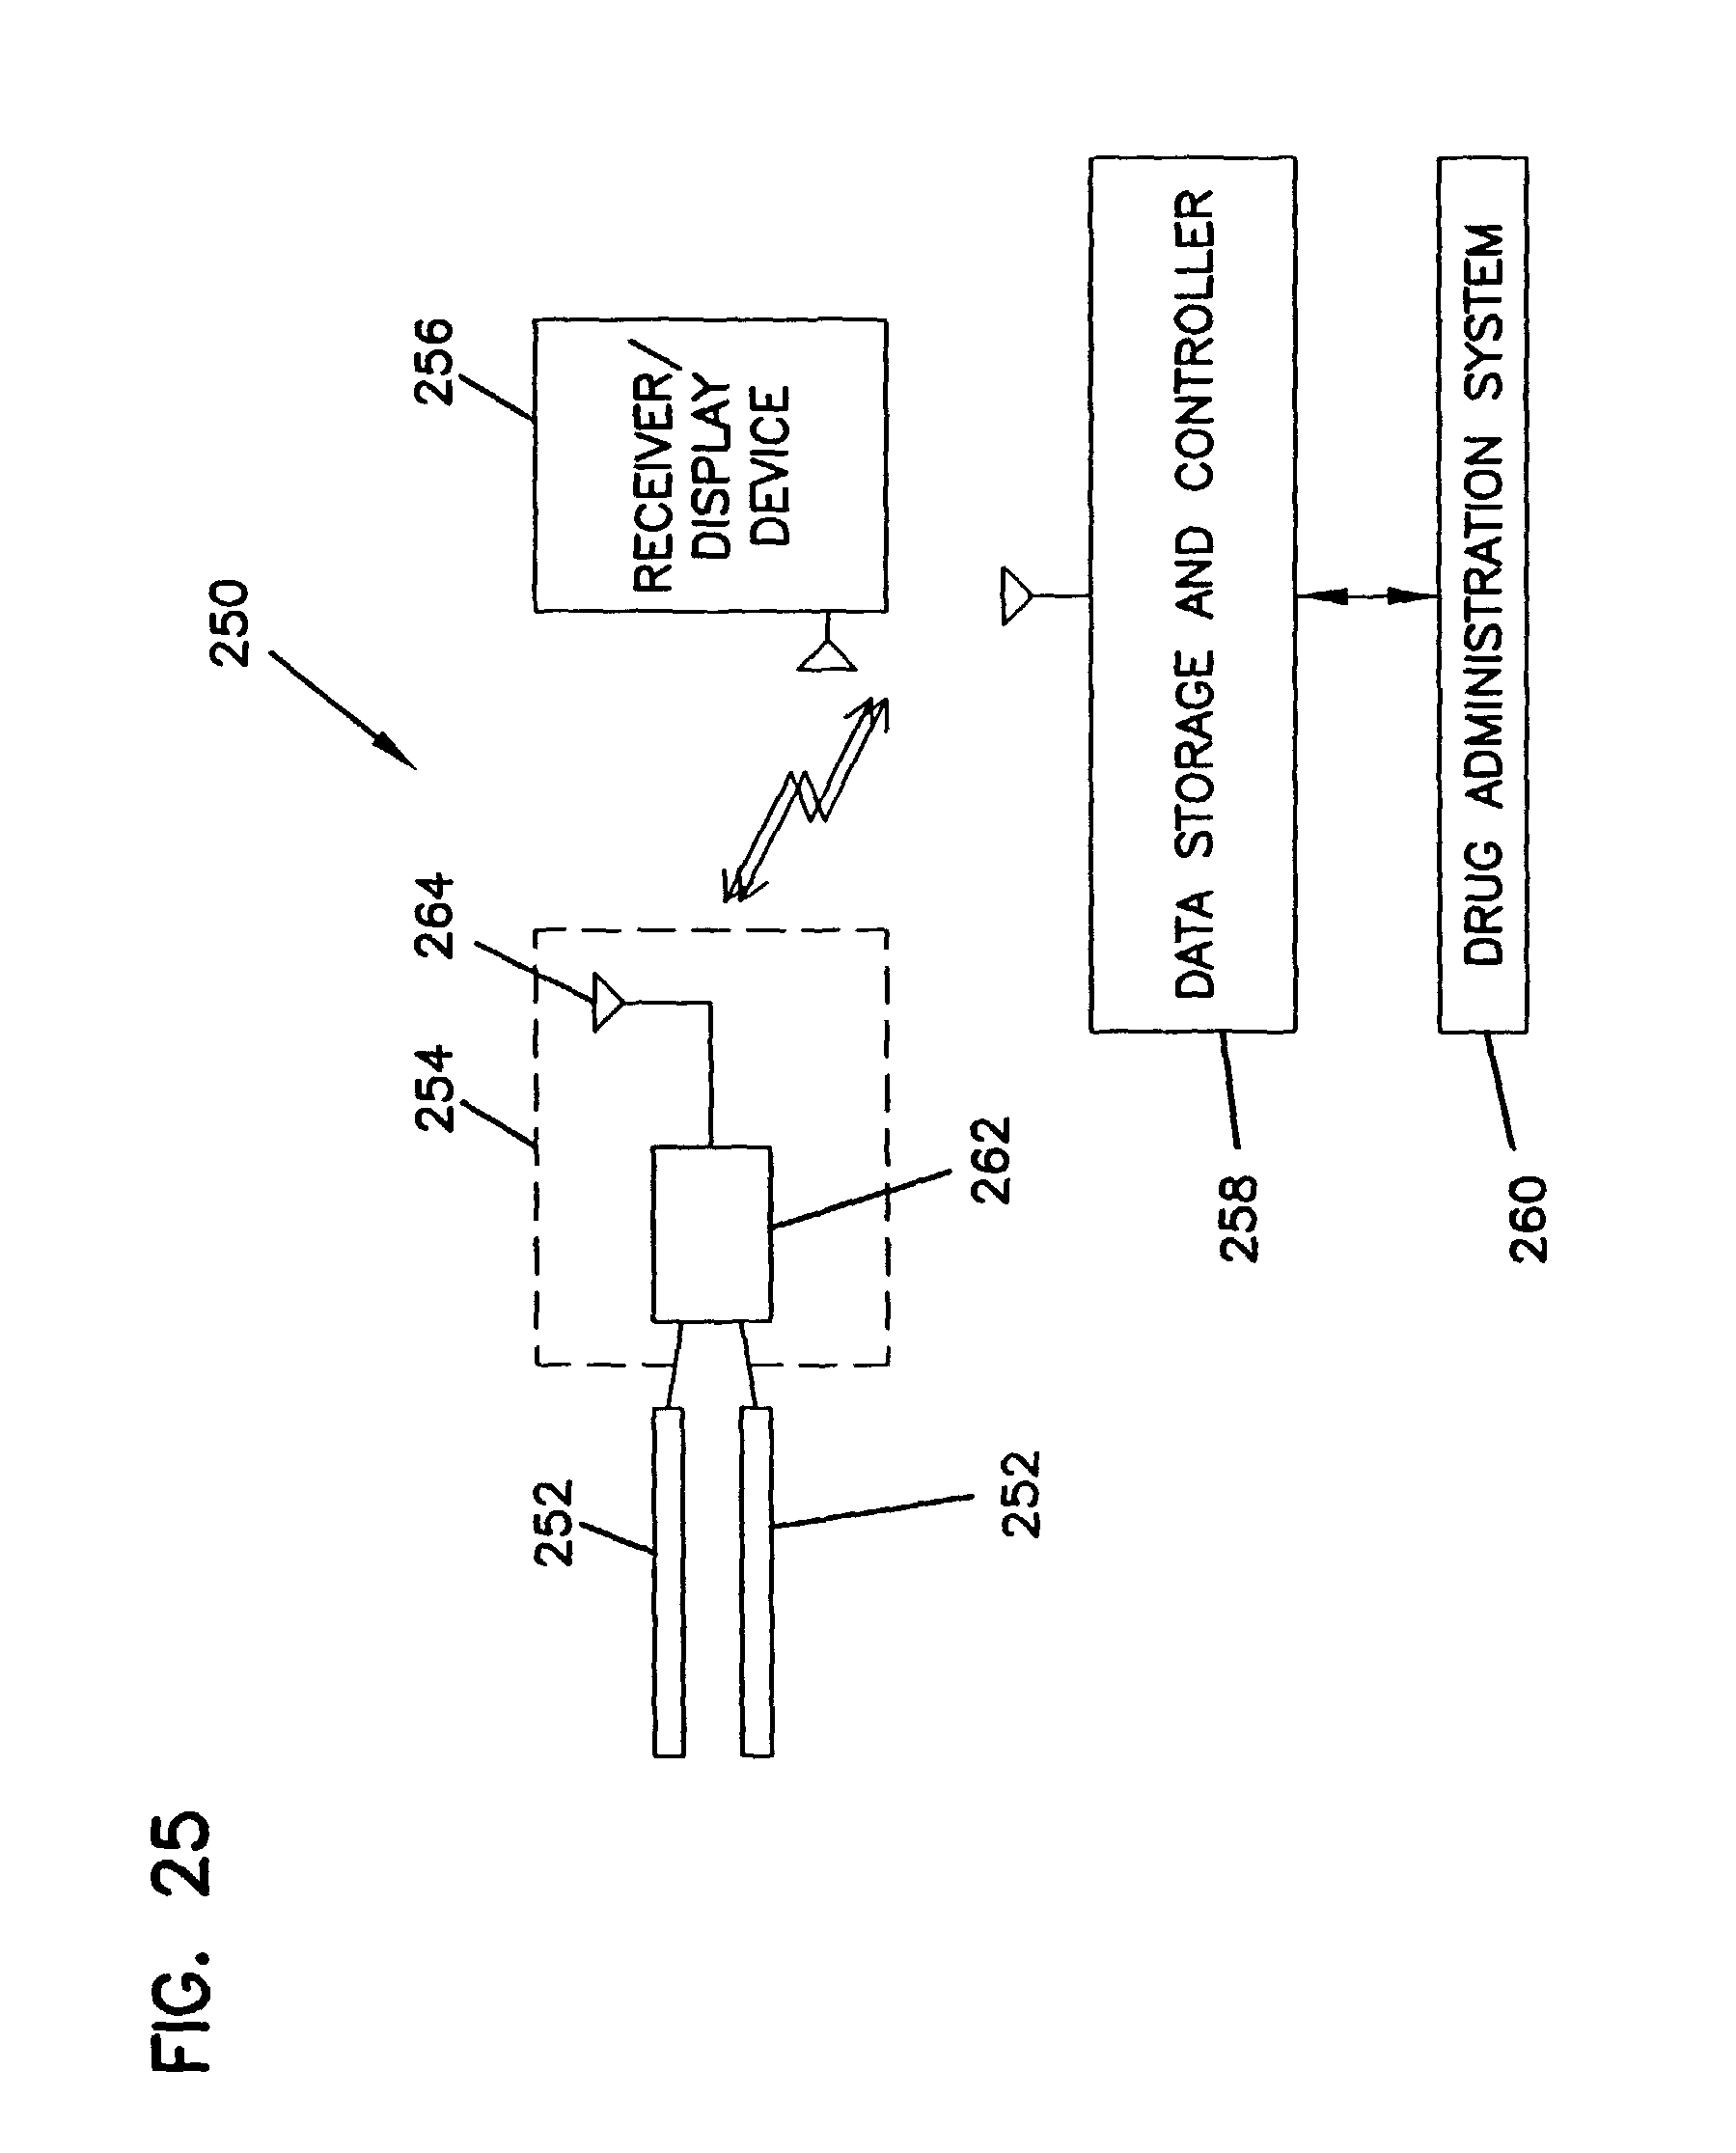 Patent Us 8880137 B2 1973 258 Wiring Harness Diagrams 0 Petitions